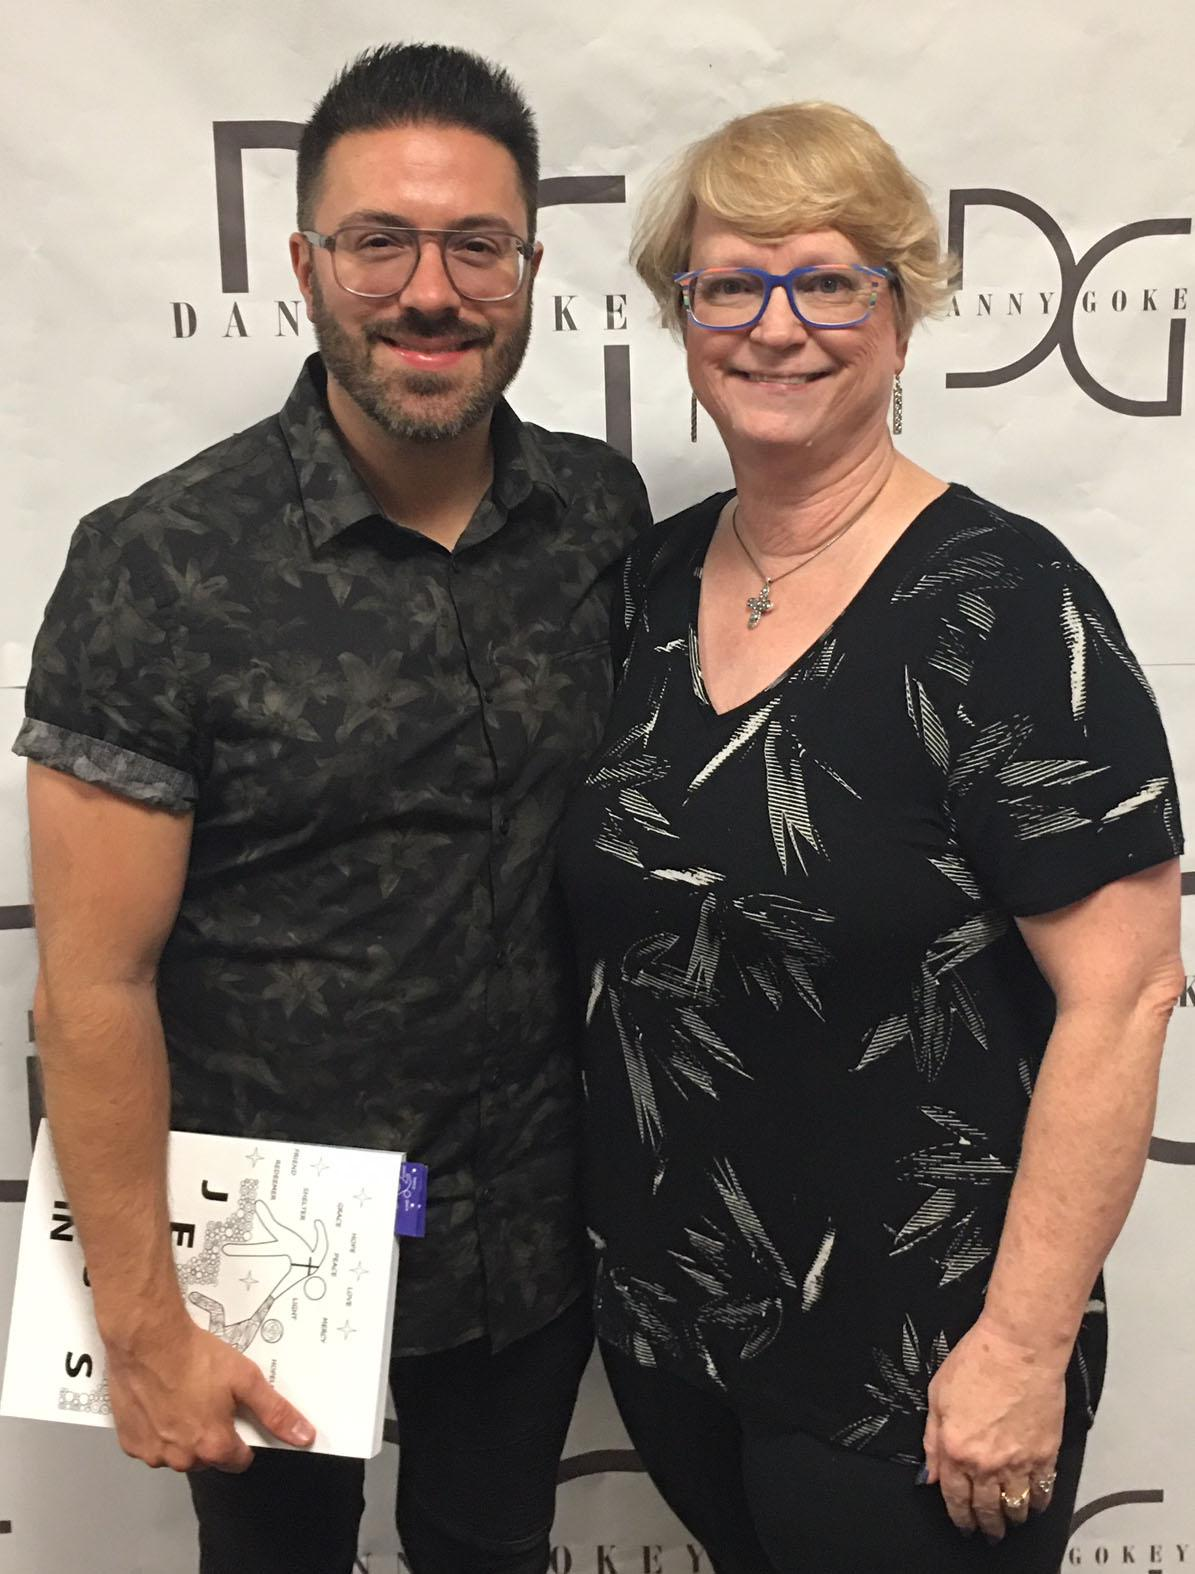 Danny Gokey with Joana Glass